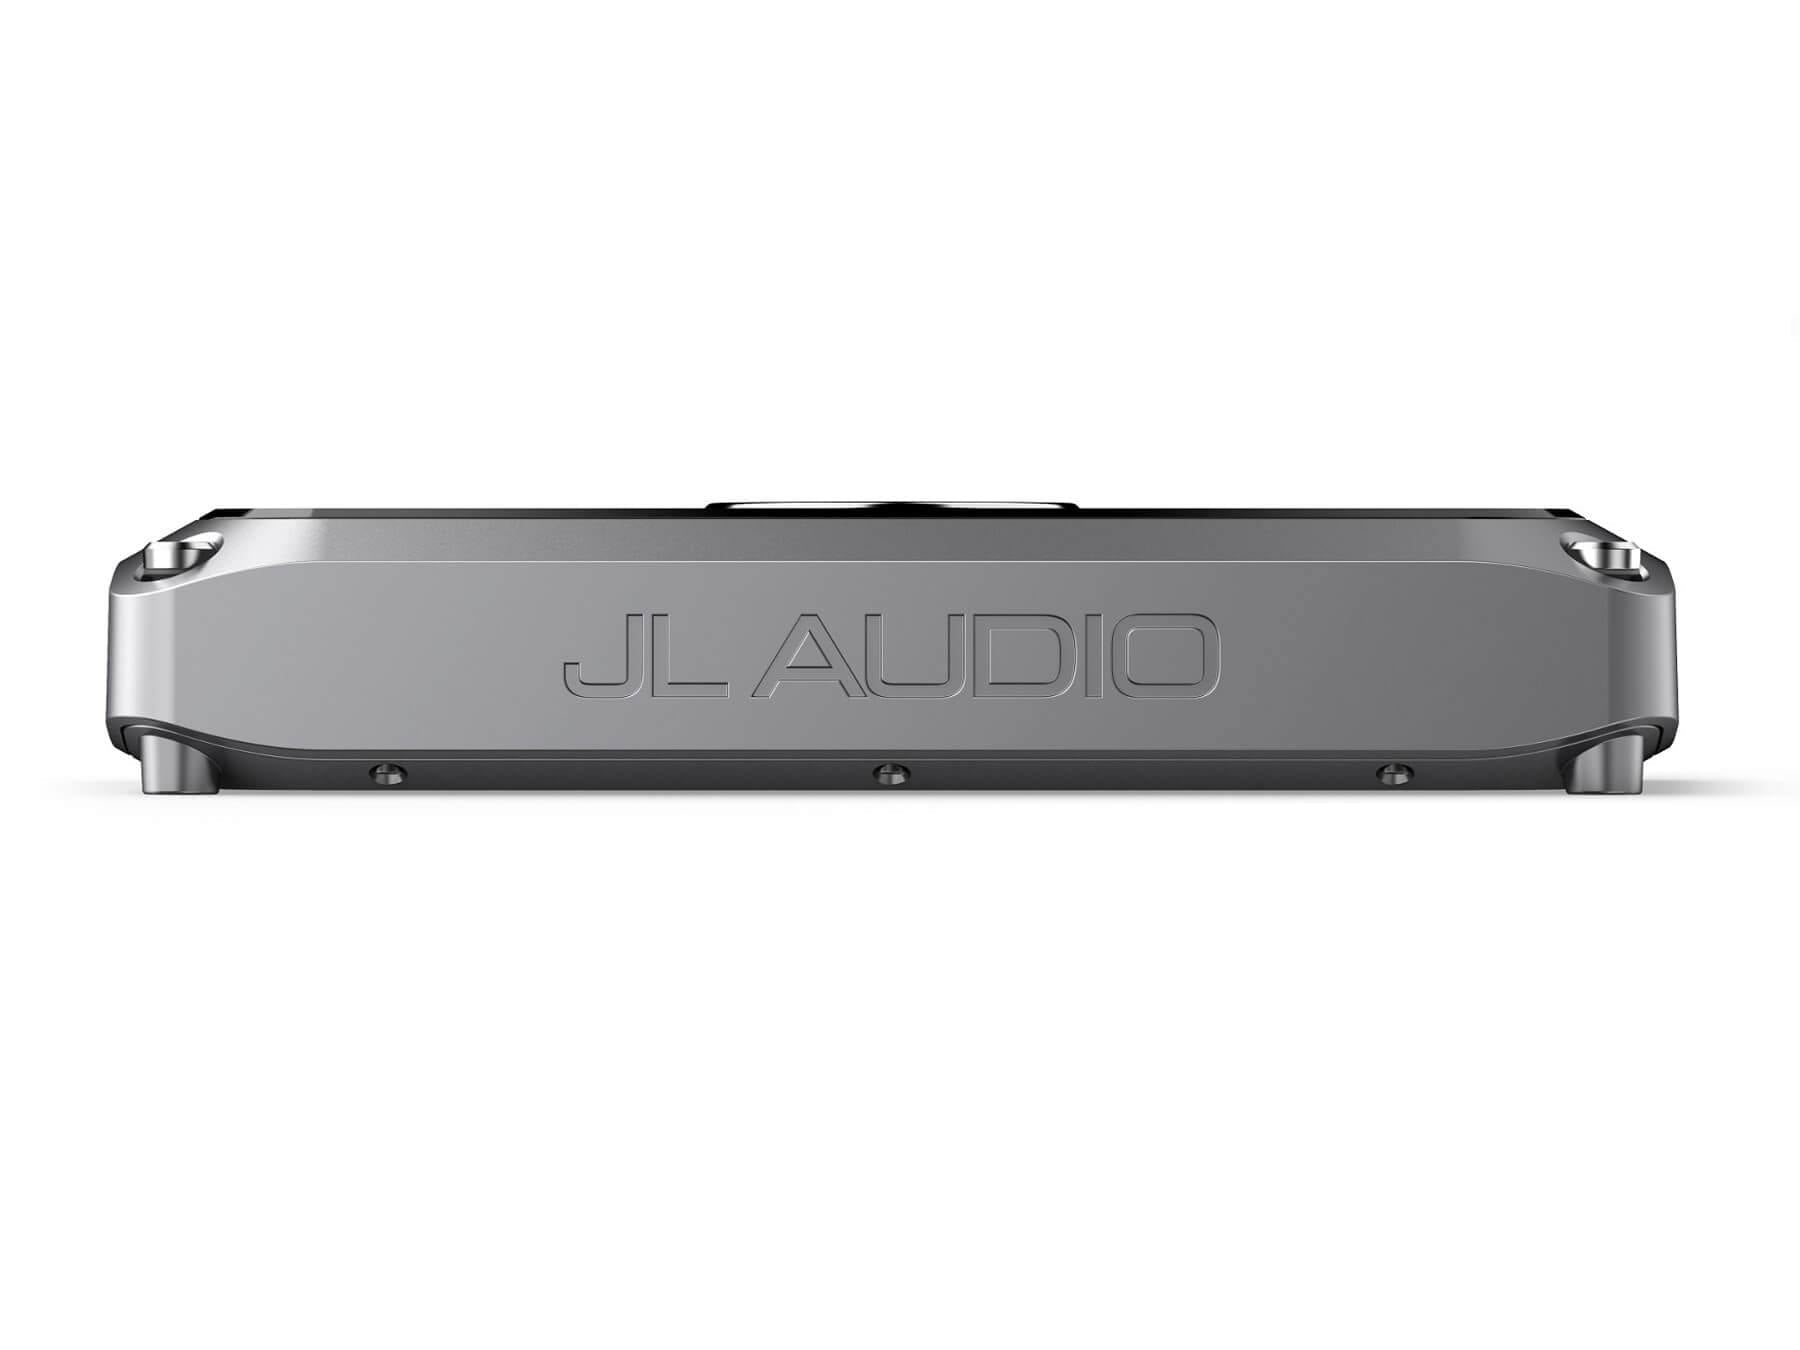 JL Audio VX1000/5i - 5 Channel Class D Amplifier with DSP - 3